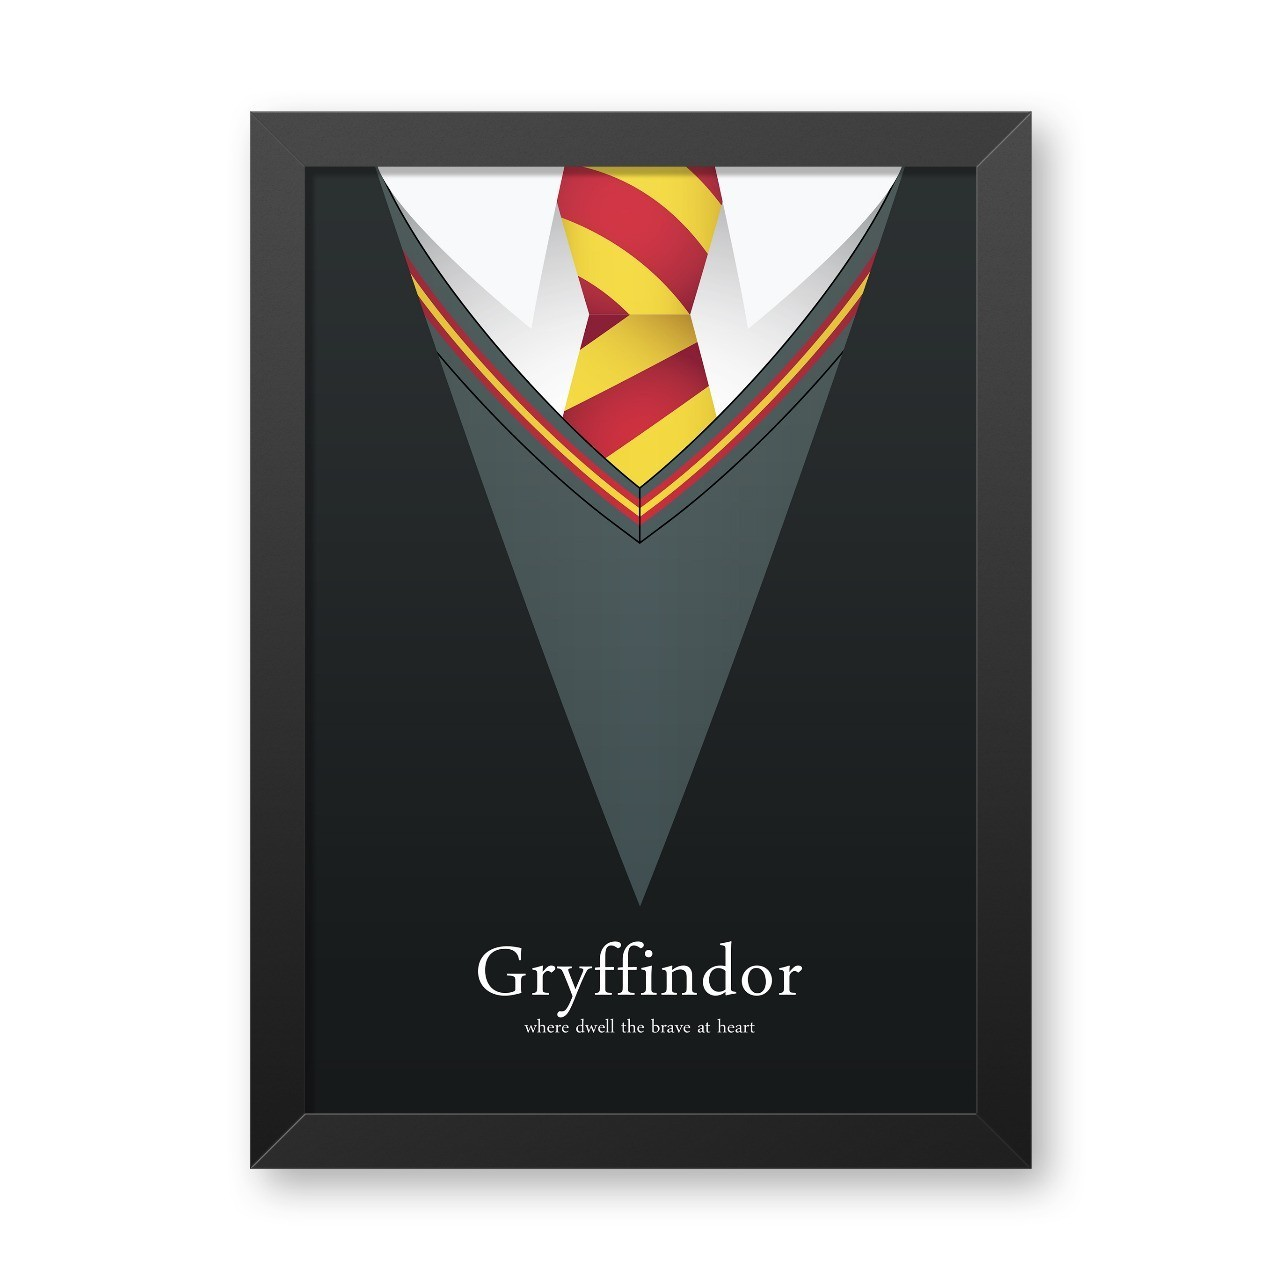 Quadro Com Moldura: Uniforme Gryffindor (Harry Potter) - 46x33